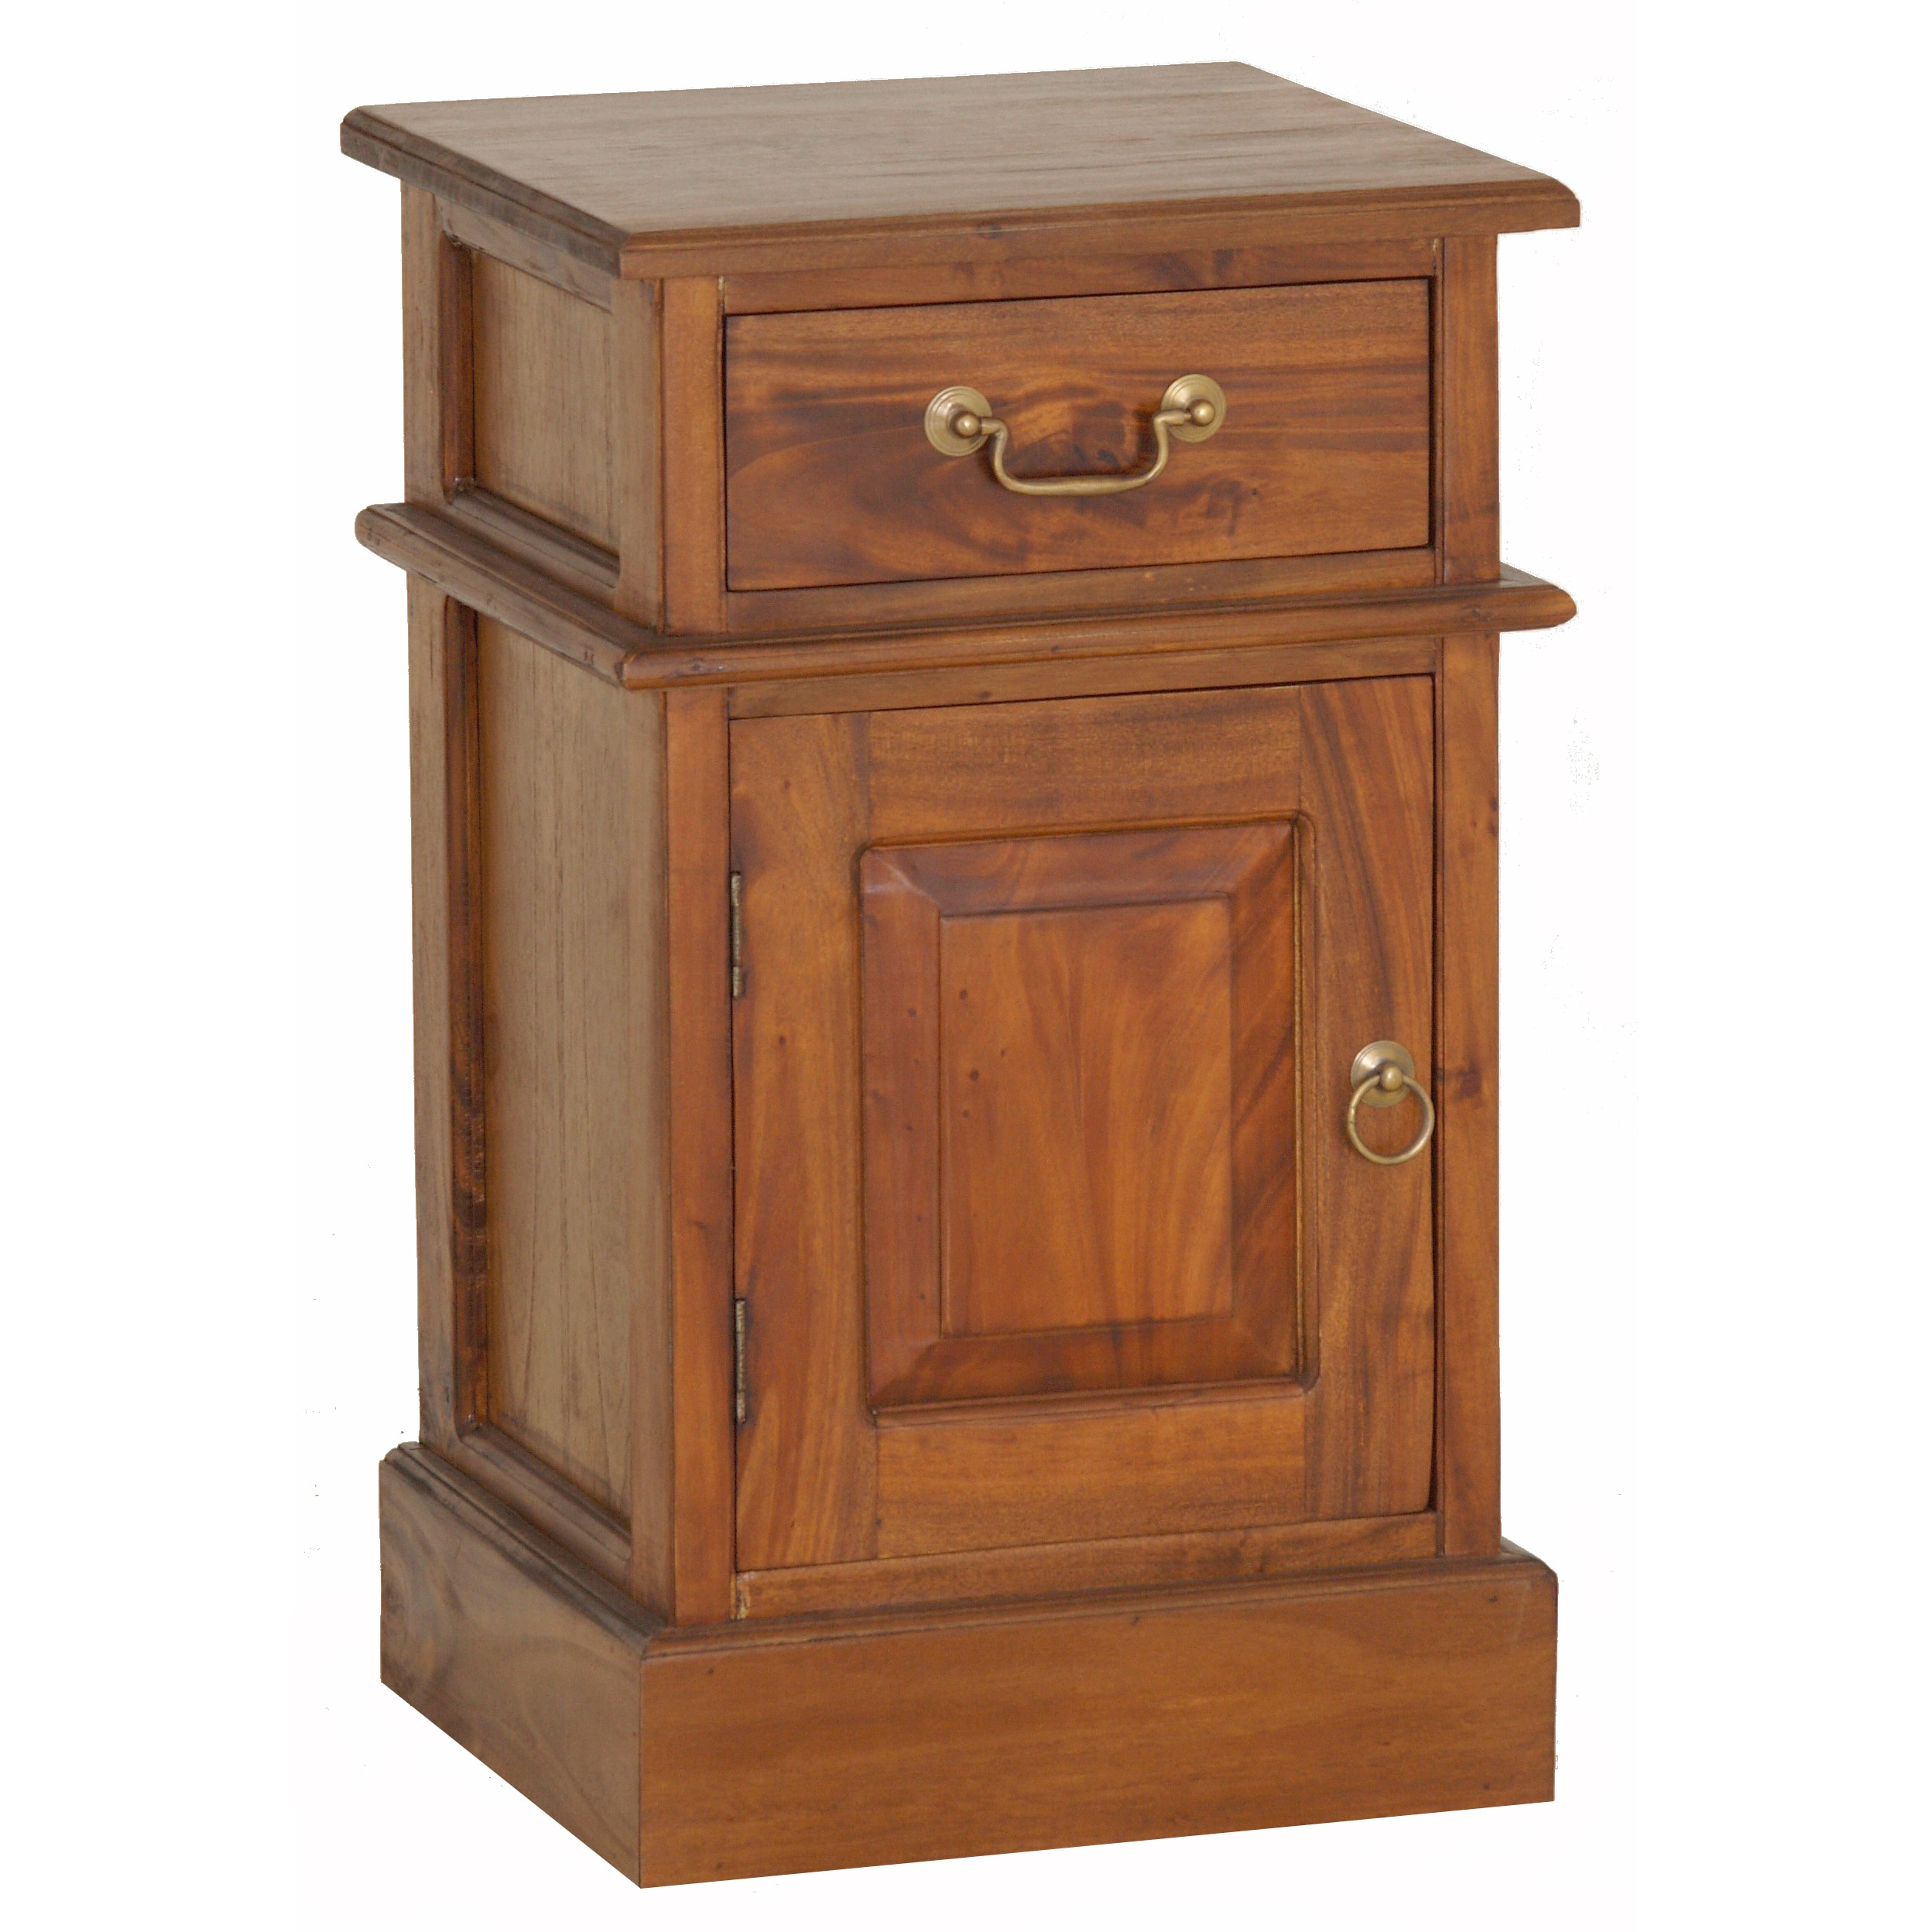 Shop handmade nes fine furniture solid mahogany wood charlotte shop handmade nes fine furniture solid mahogany wood charlotte nightstand bedside table 26 inches indonesia free shipping today overstock watchthetrailerfo